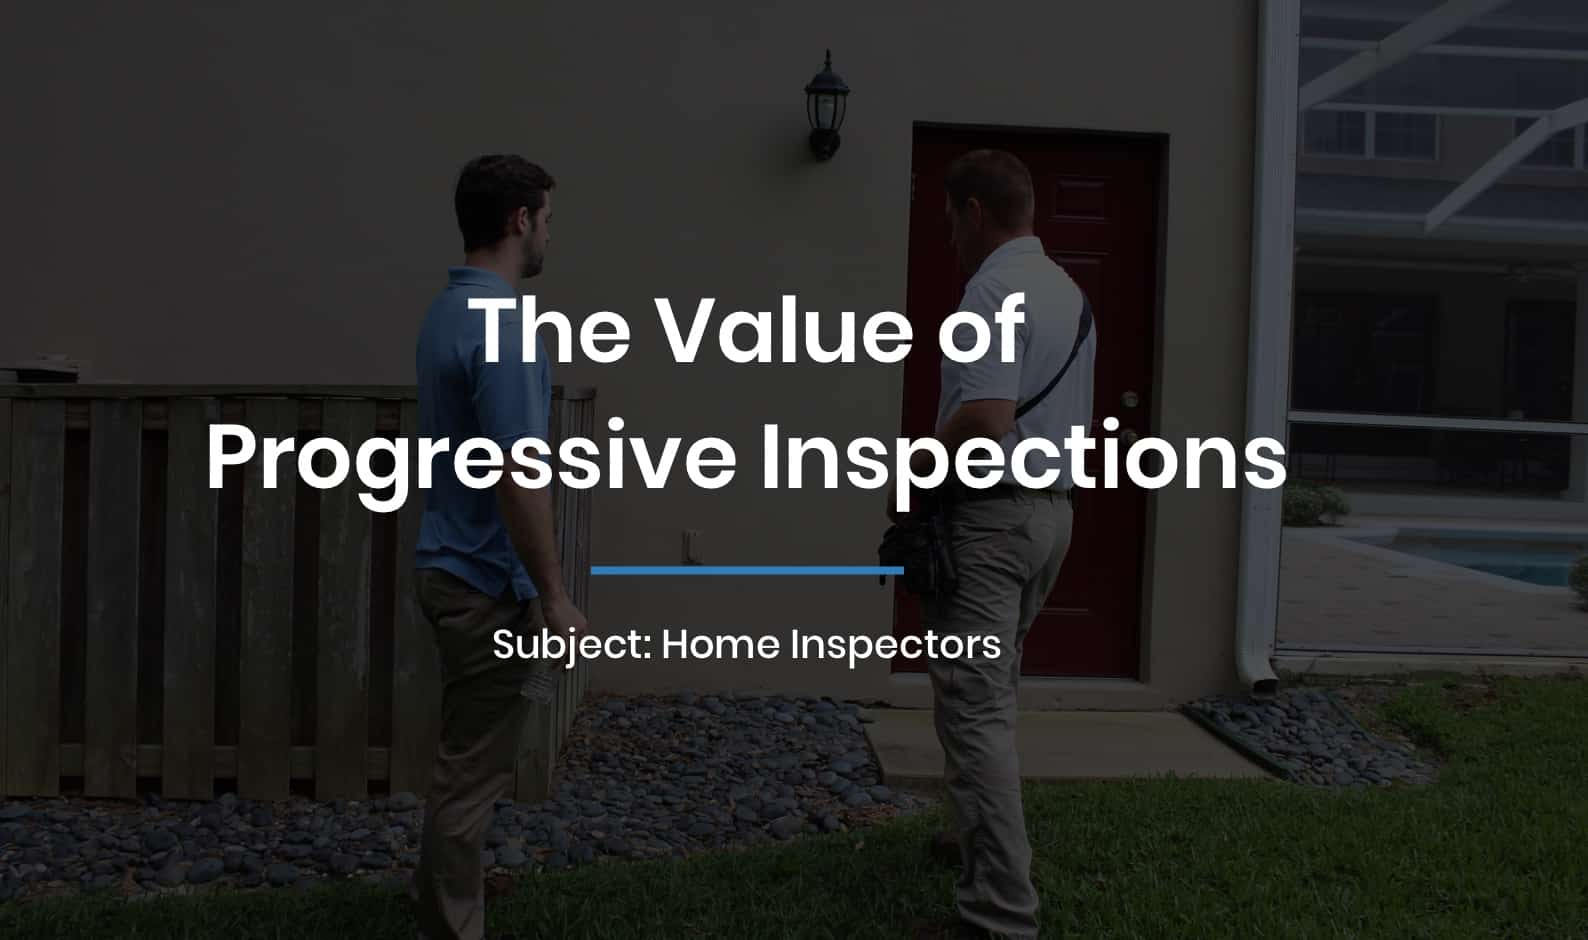 The Value of Progressive Inspections